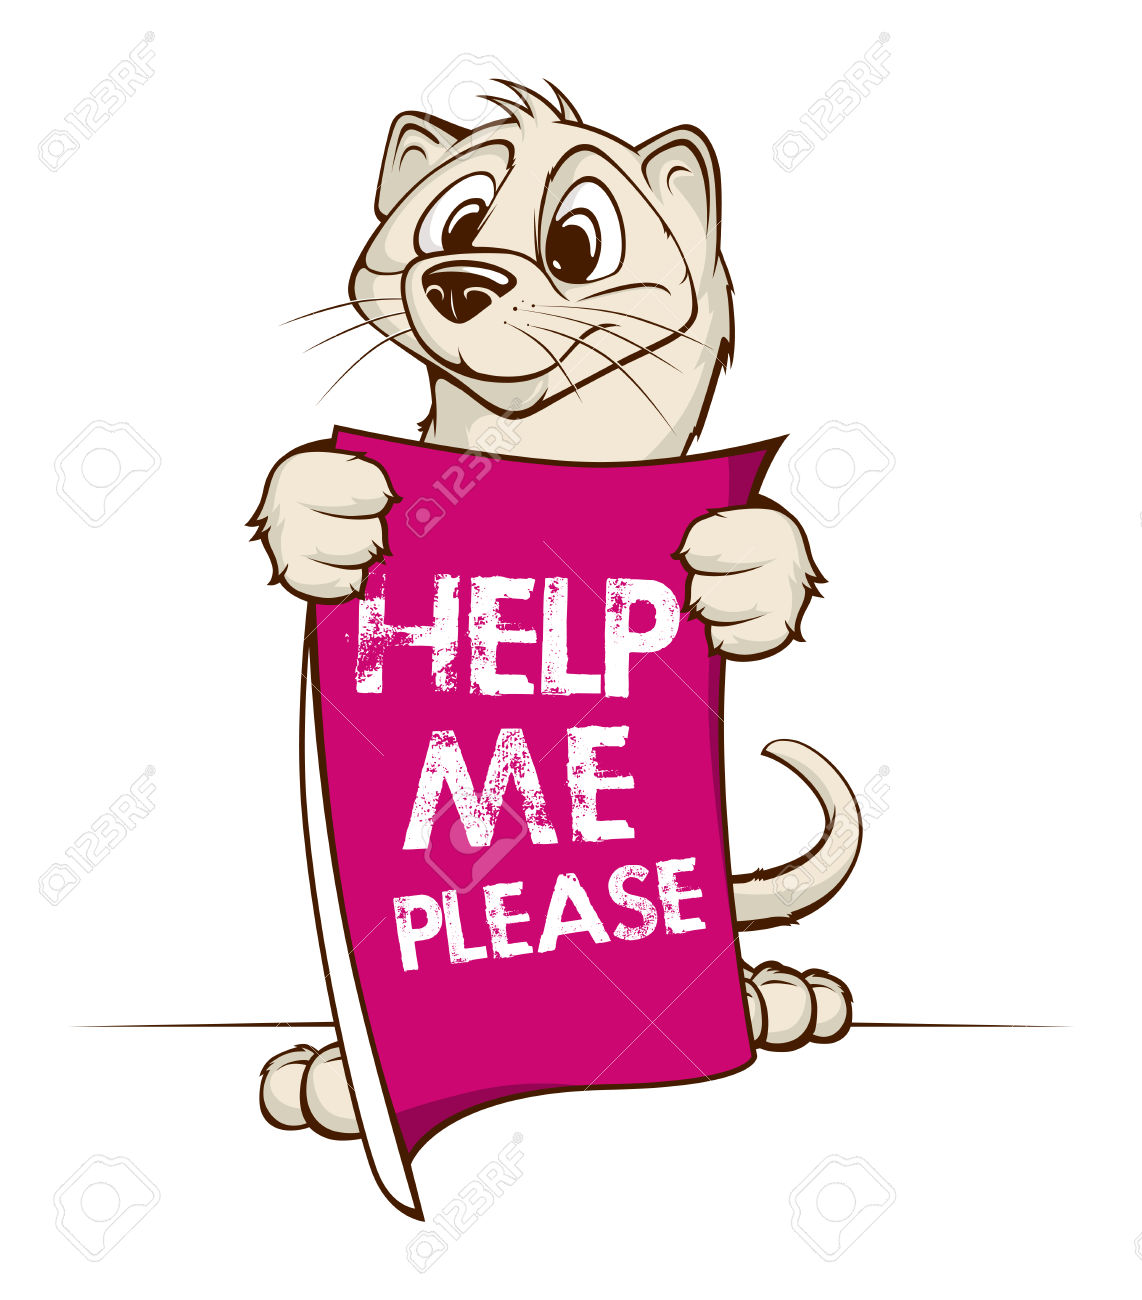 Please clipart #9, Download drawings